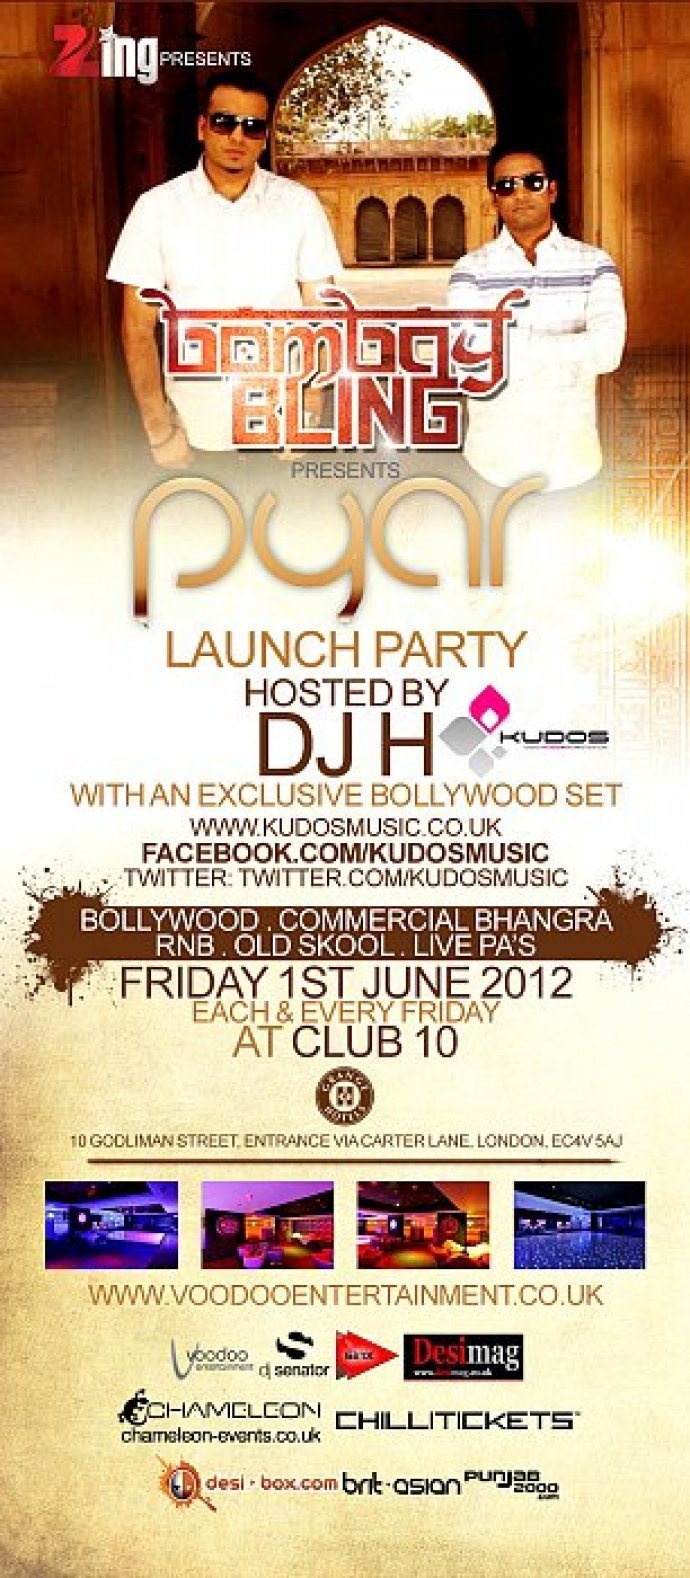 Launching Some 'pyar' With DJ H!